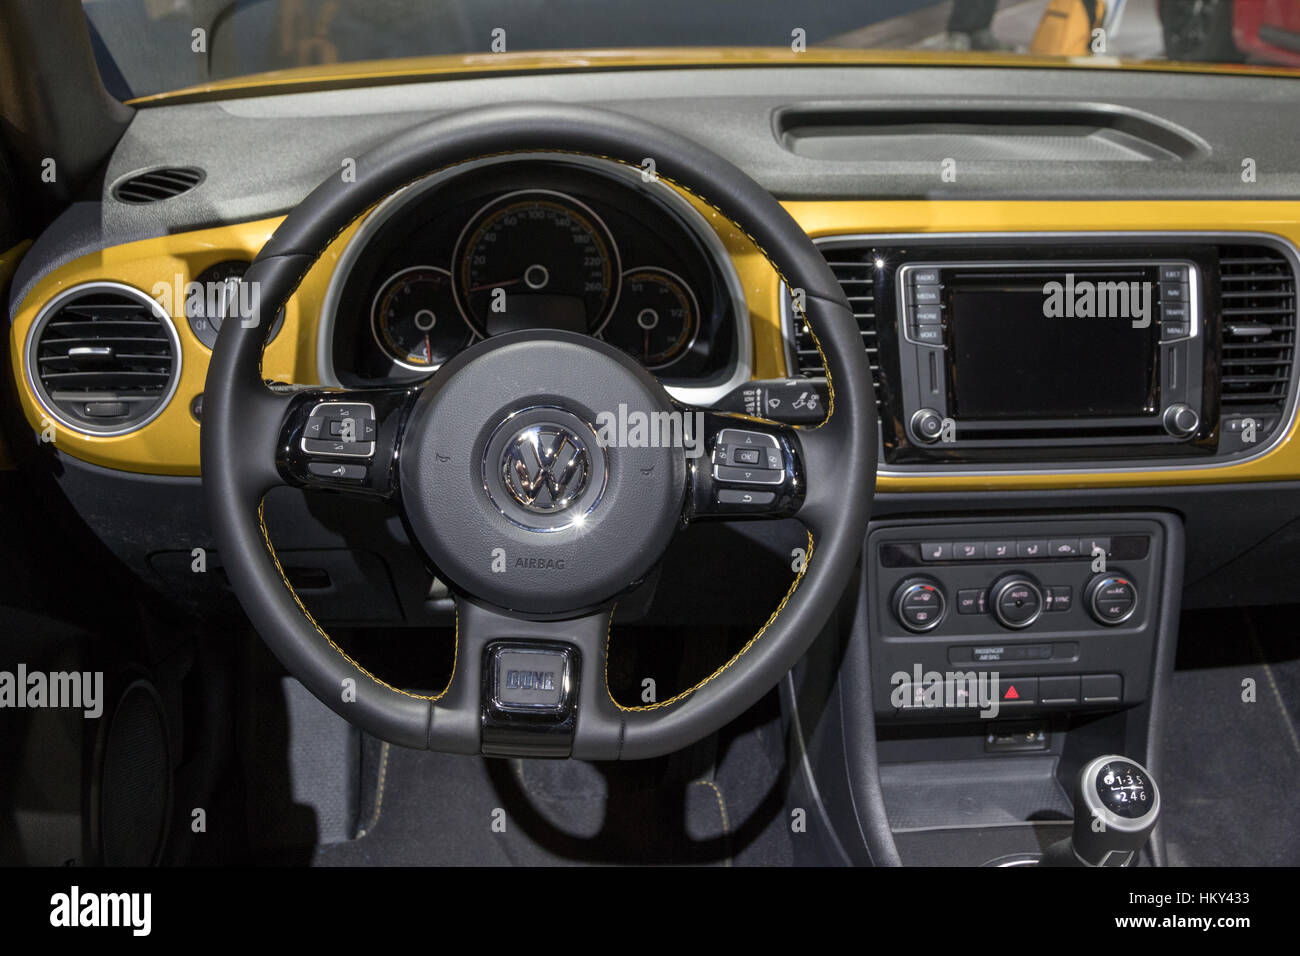 Brussels jan 19 2017 interior dashboard vw beetle for New beetle interieur